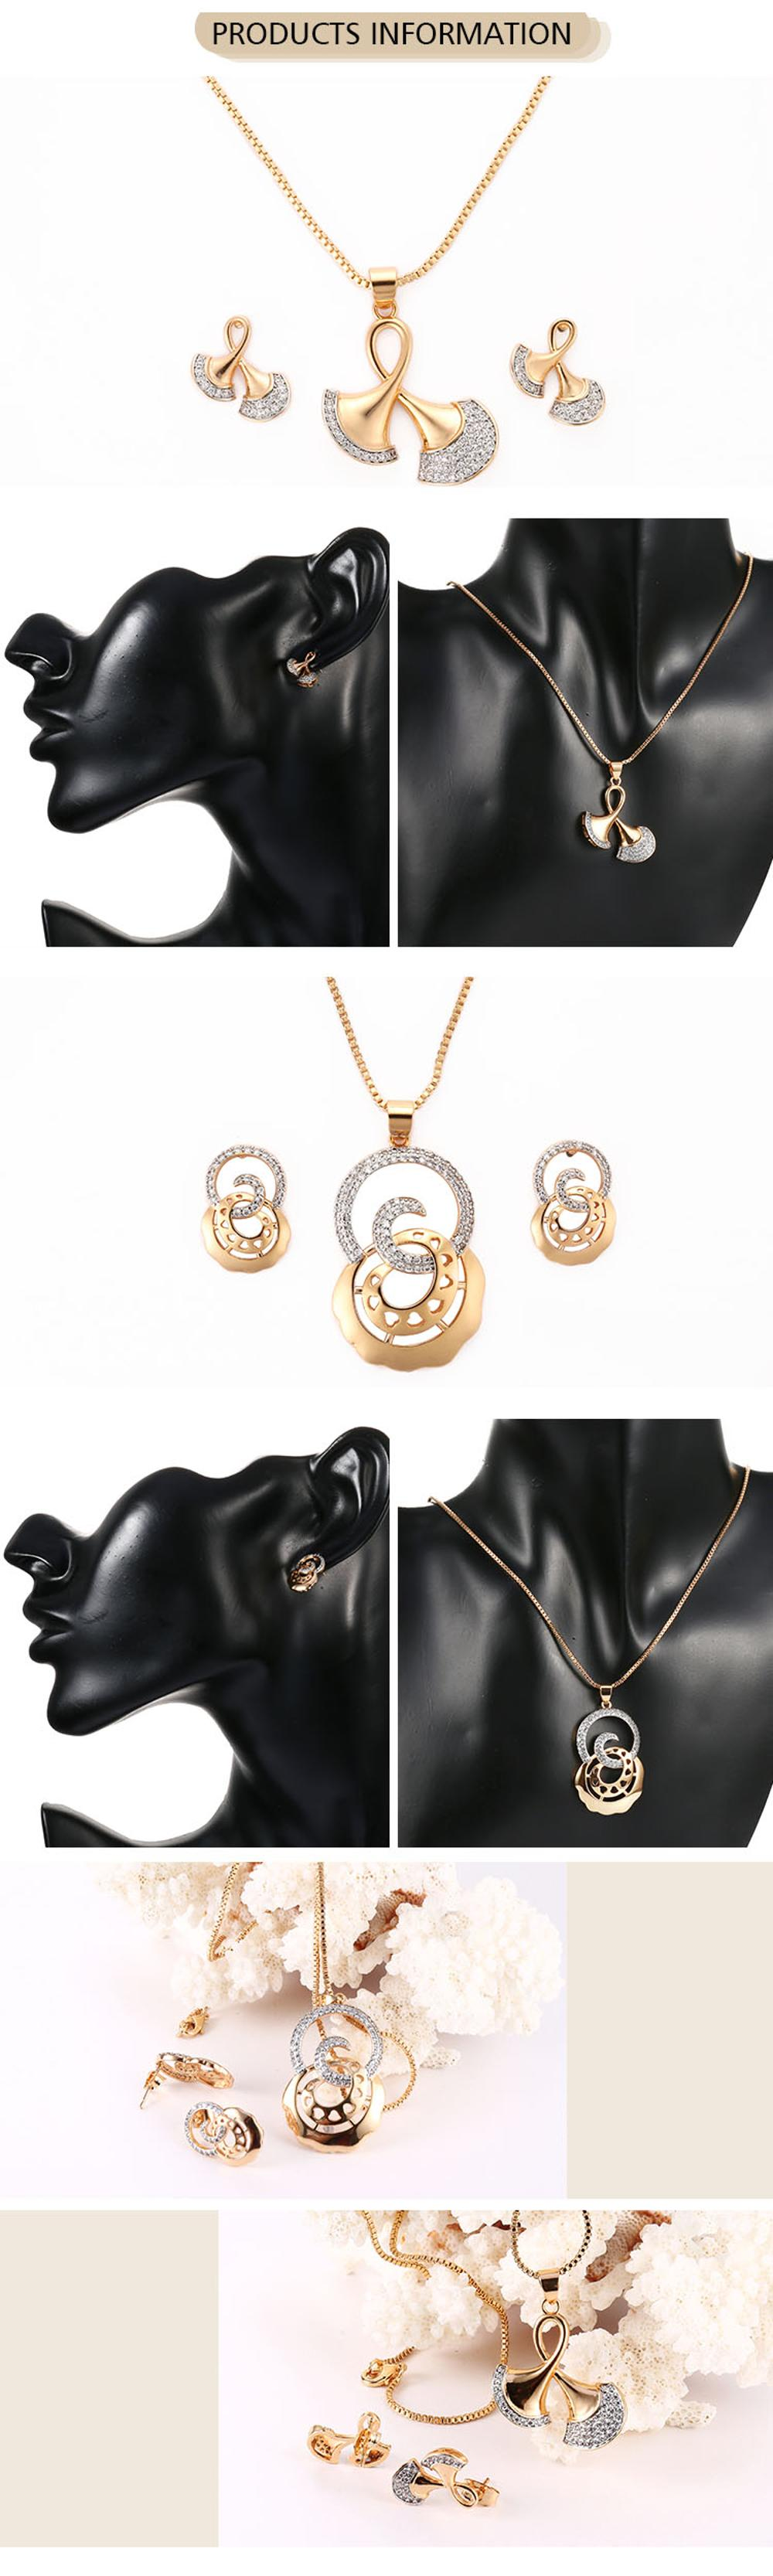 Factory Wholesale Fashion Jewelry Gold Necklace Earring Set Korea Imitation Jewellery